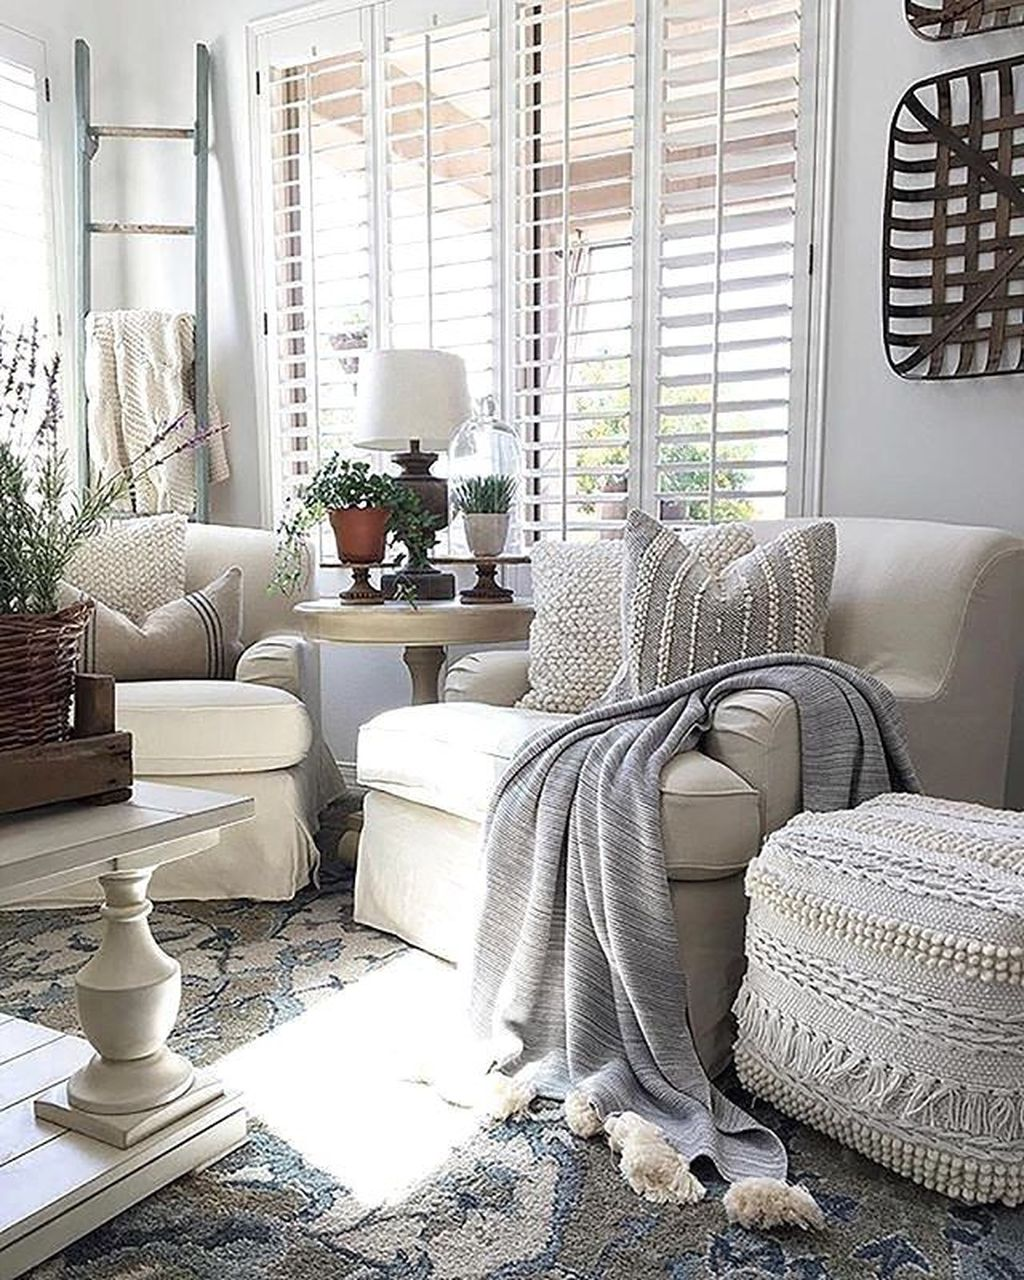 Inspiring Beachy Farmhouse Living Room Decor Ideas 13